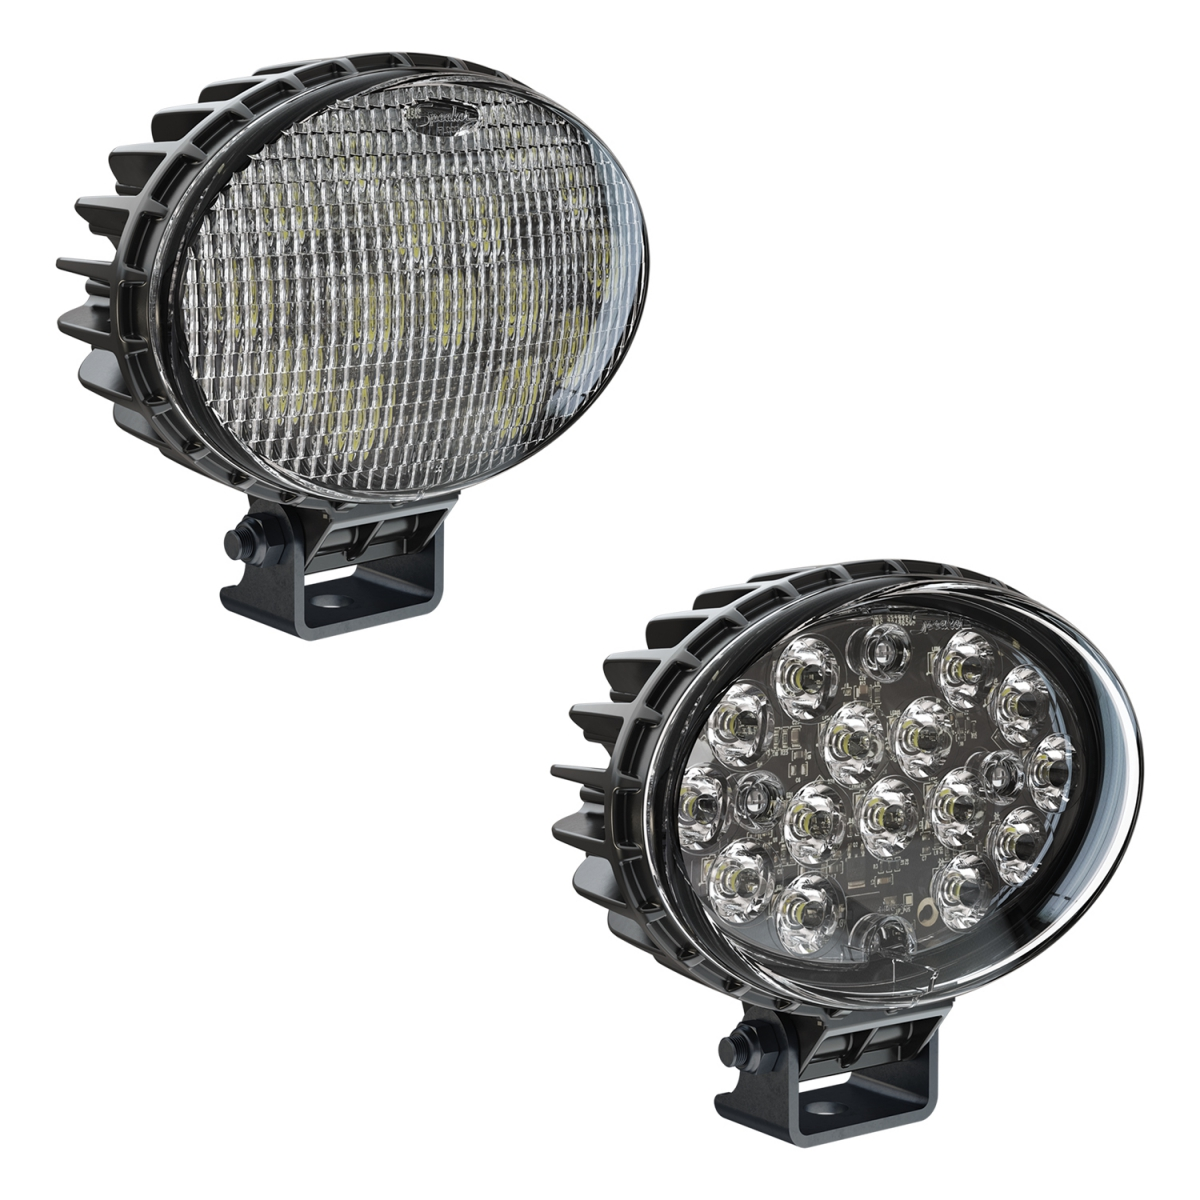 LED Work Lights – Model 7150